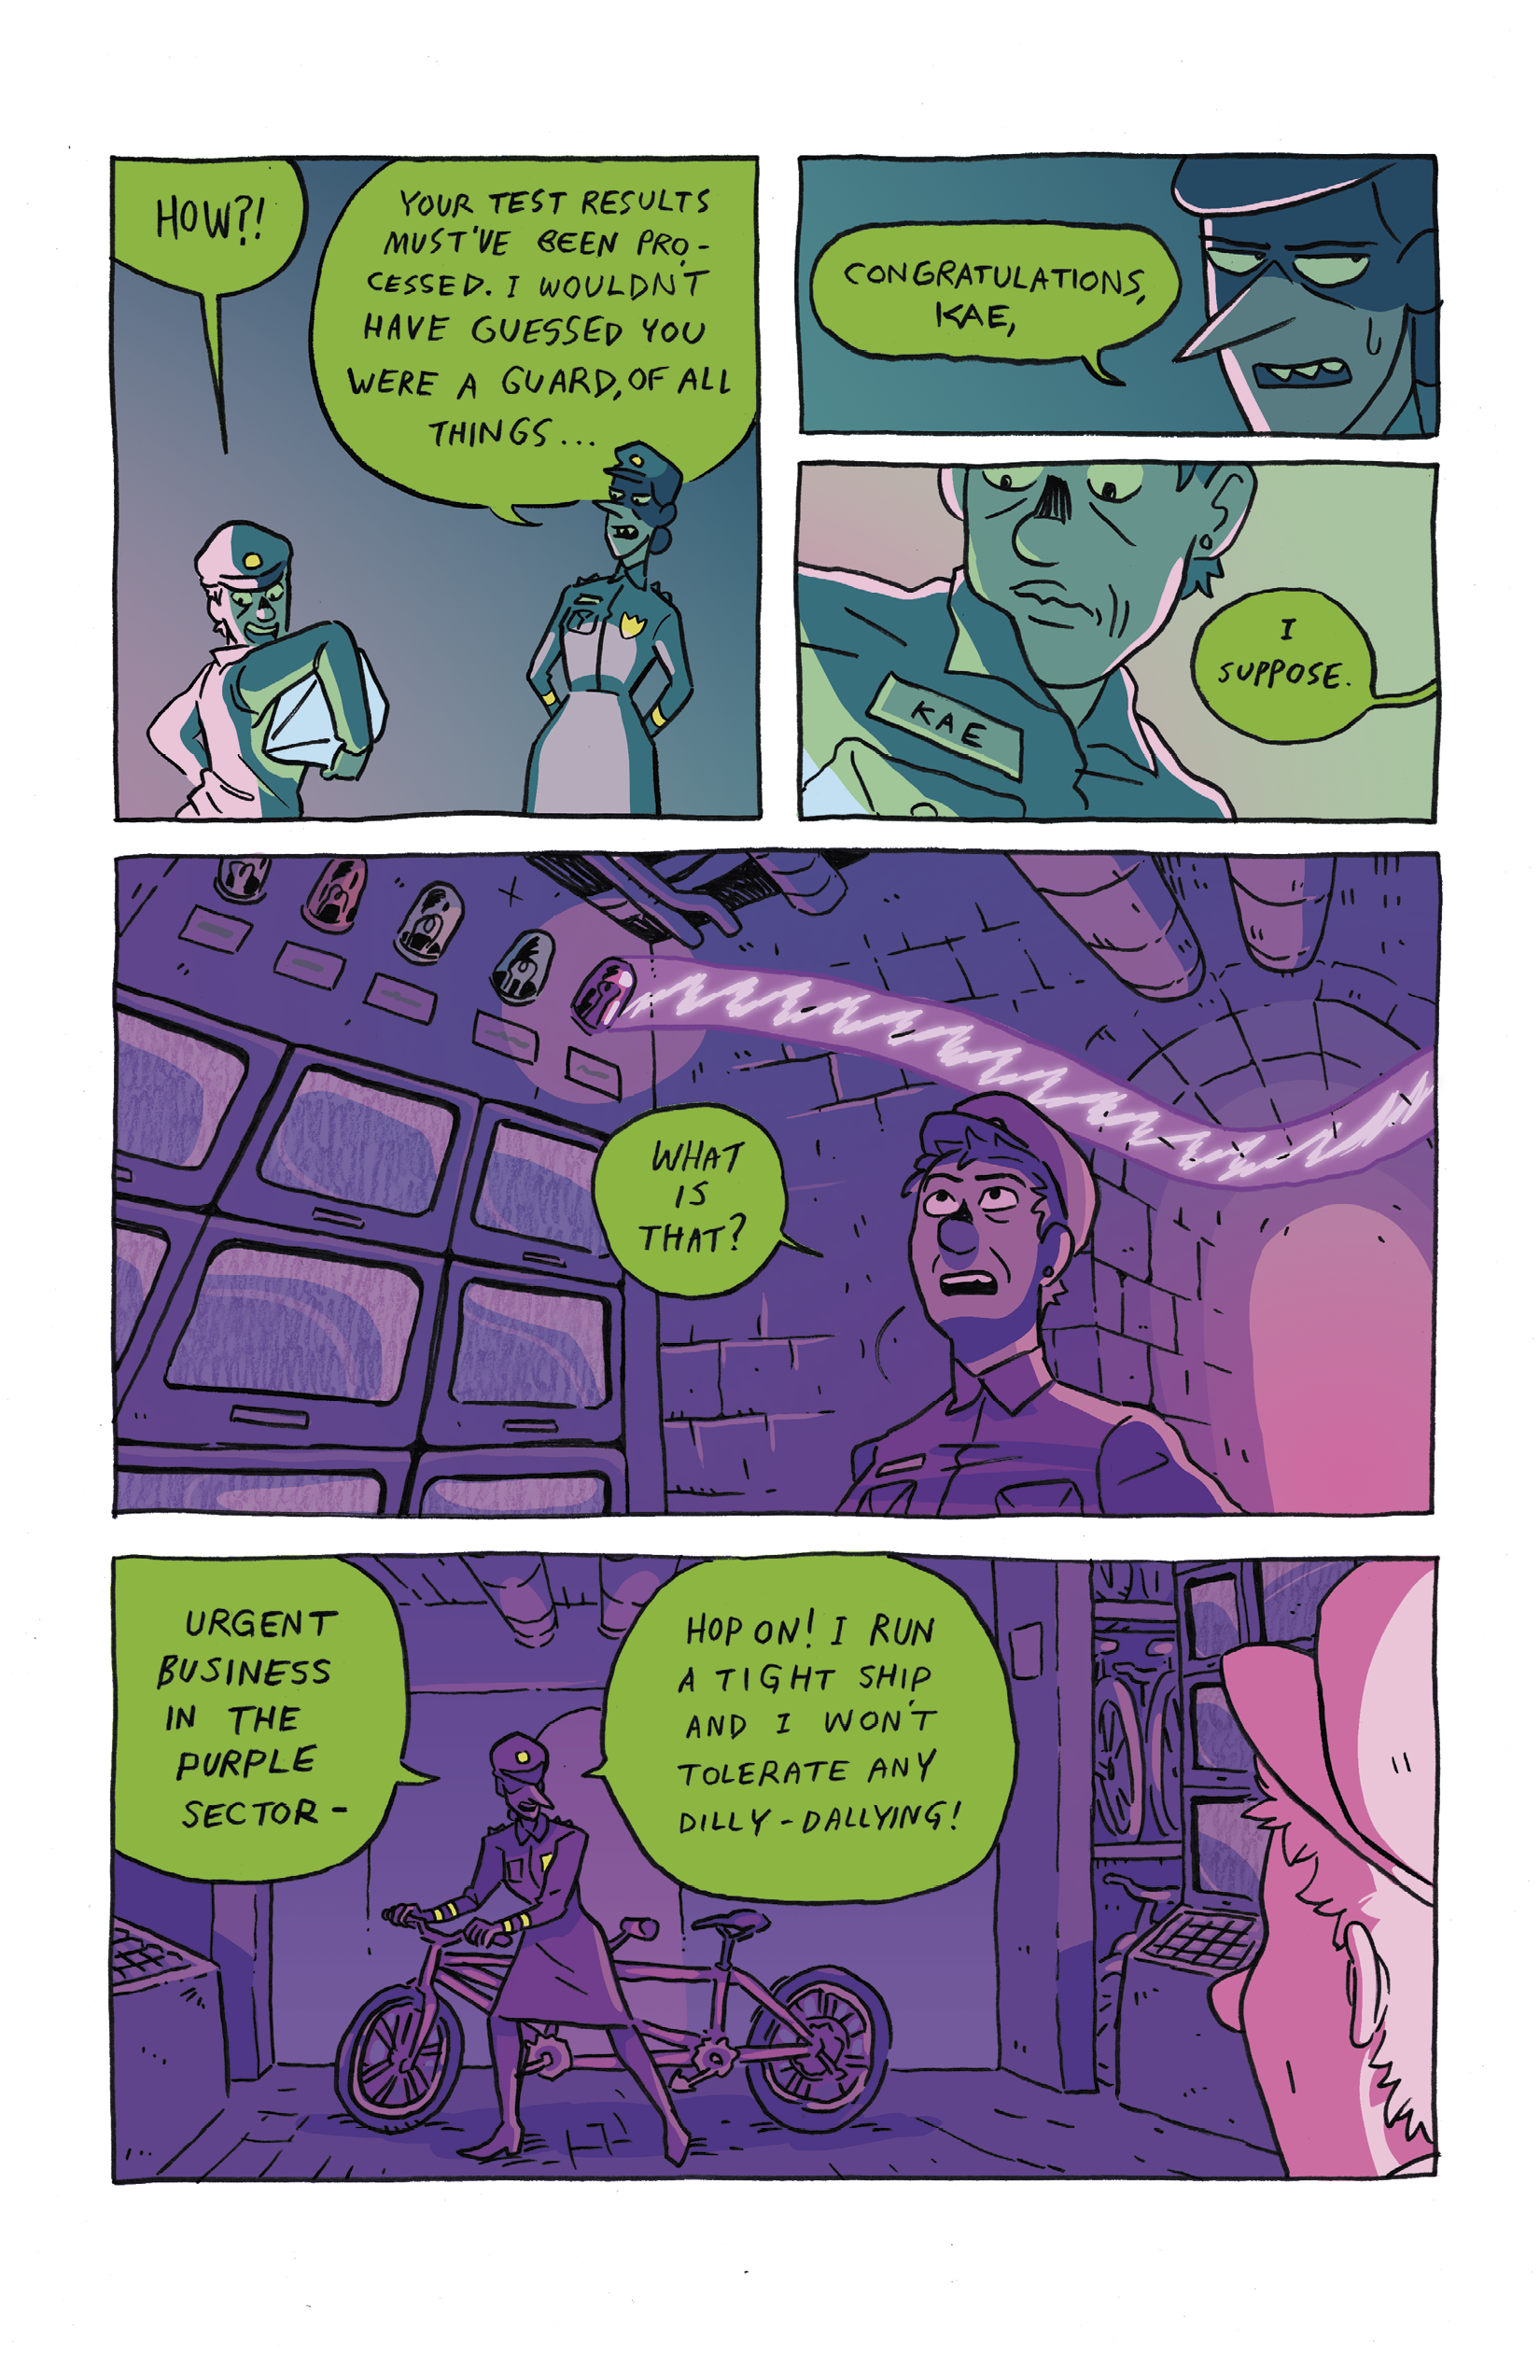 METANOIA_final_001_single_pages16.png